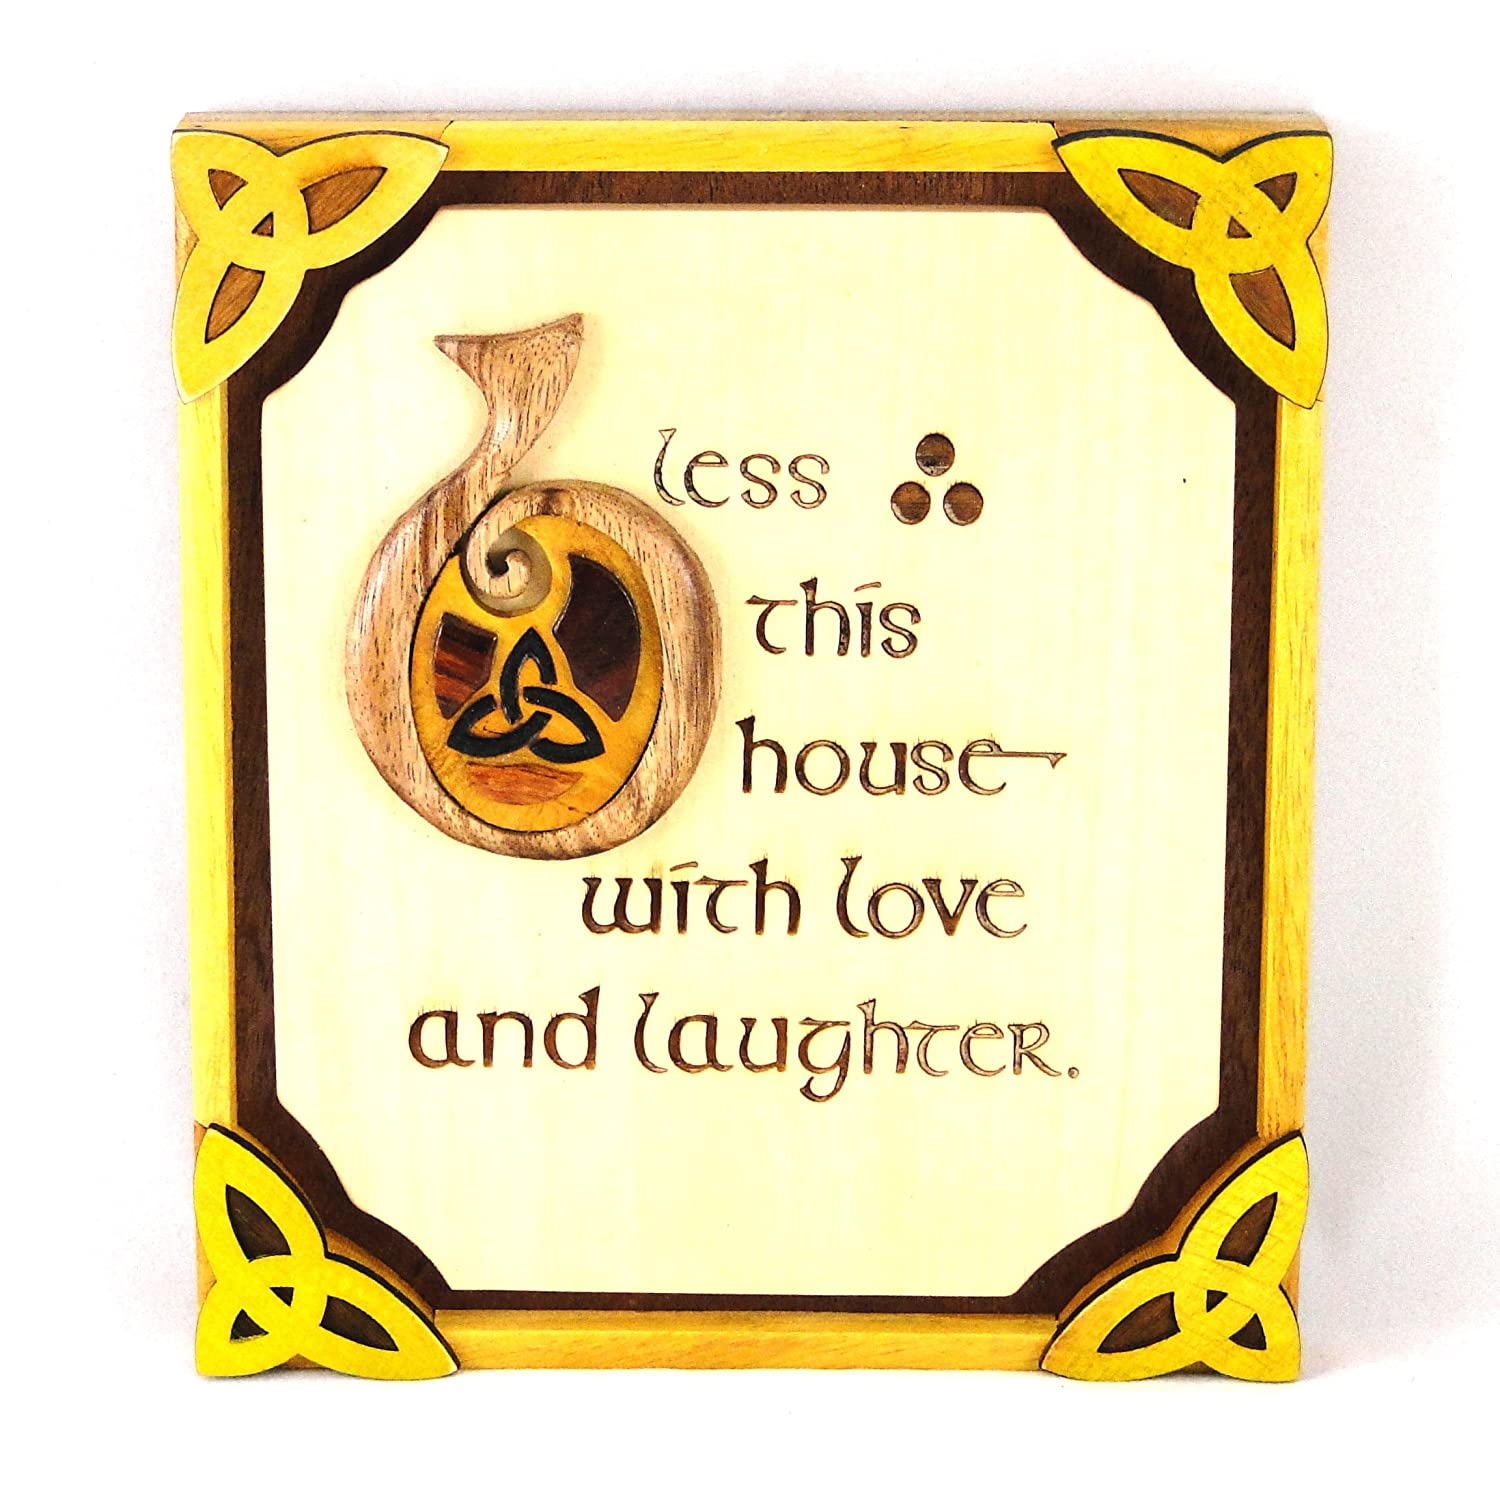 Amazon.com: Wooden Irish Bless This House Plaque With Love And ...